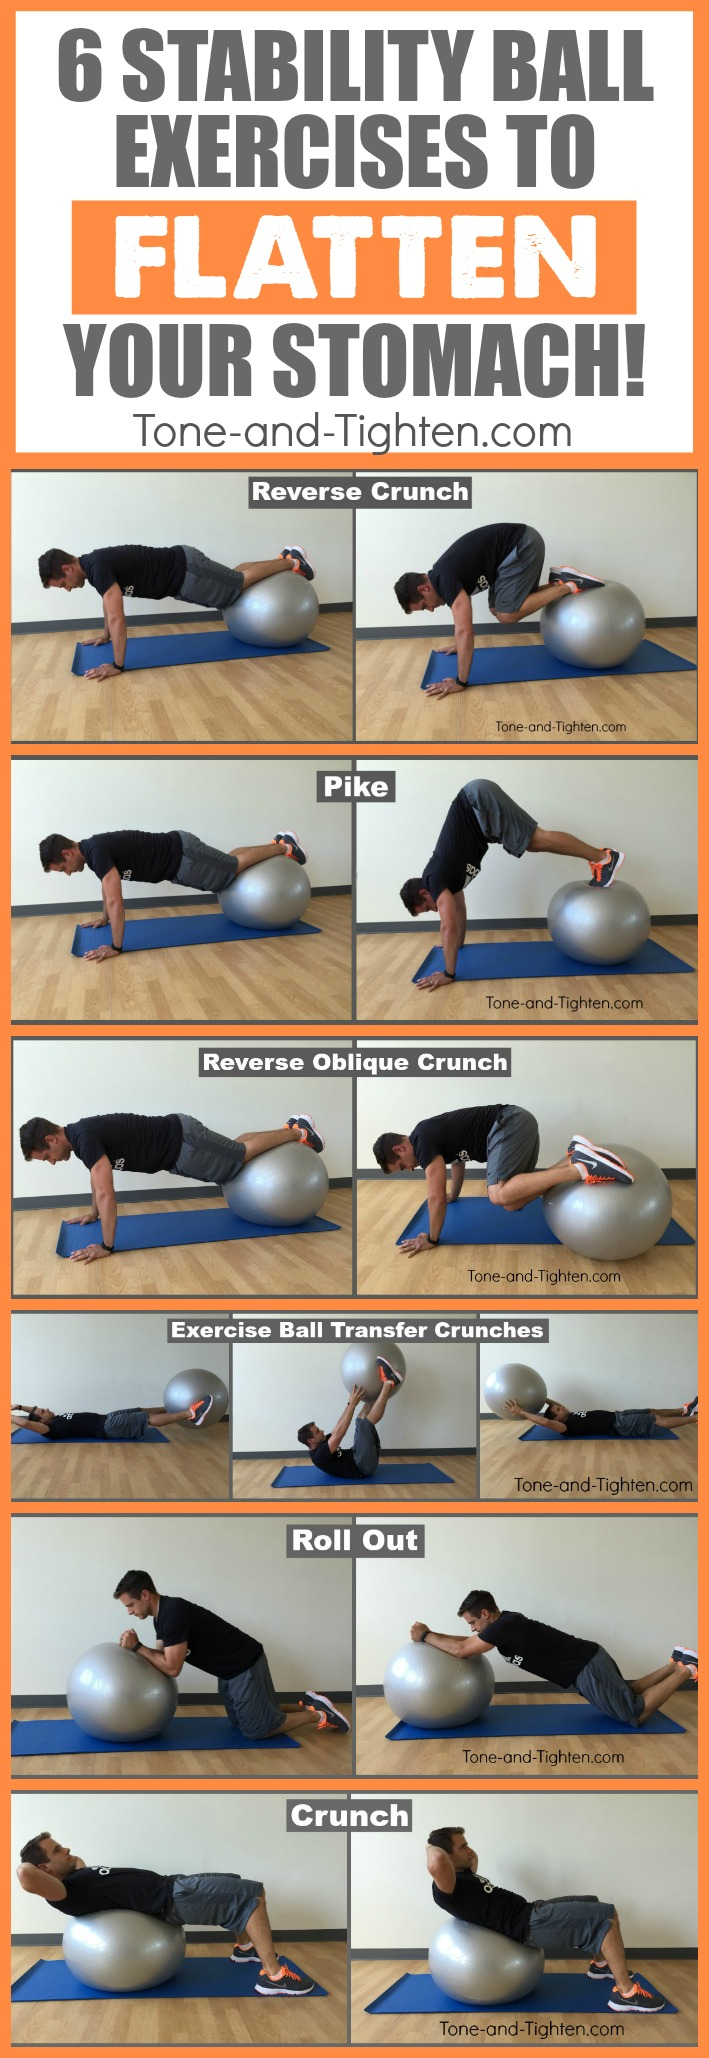 Best Exercise Ball Ab Workout At Home | Tone and Tighten